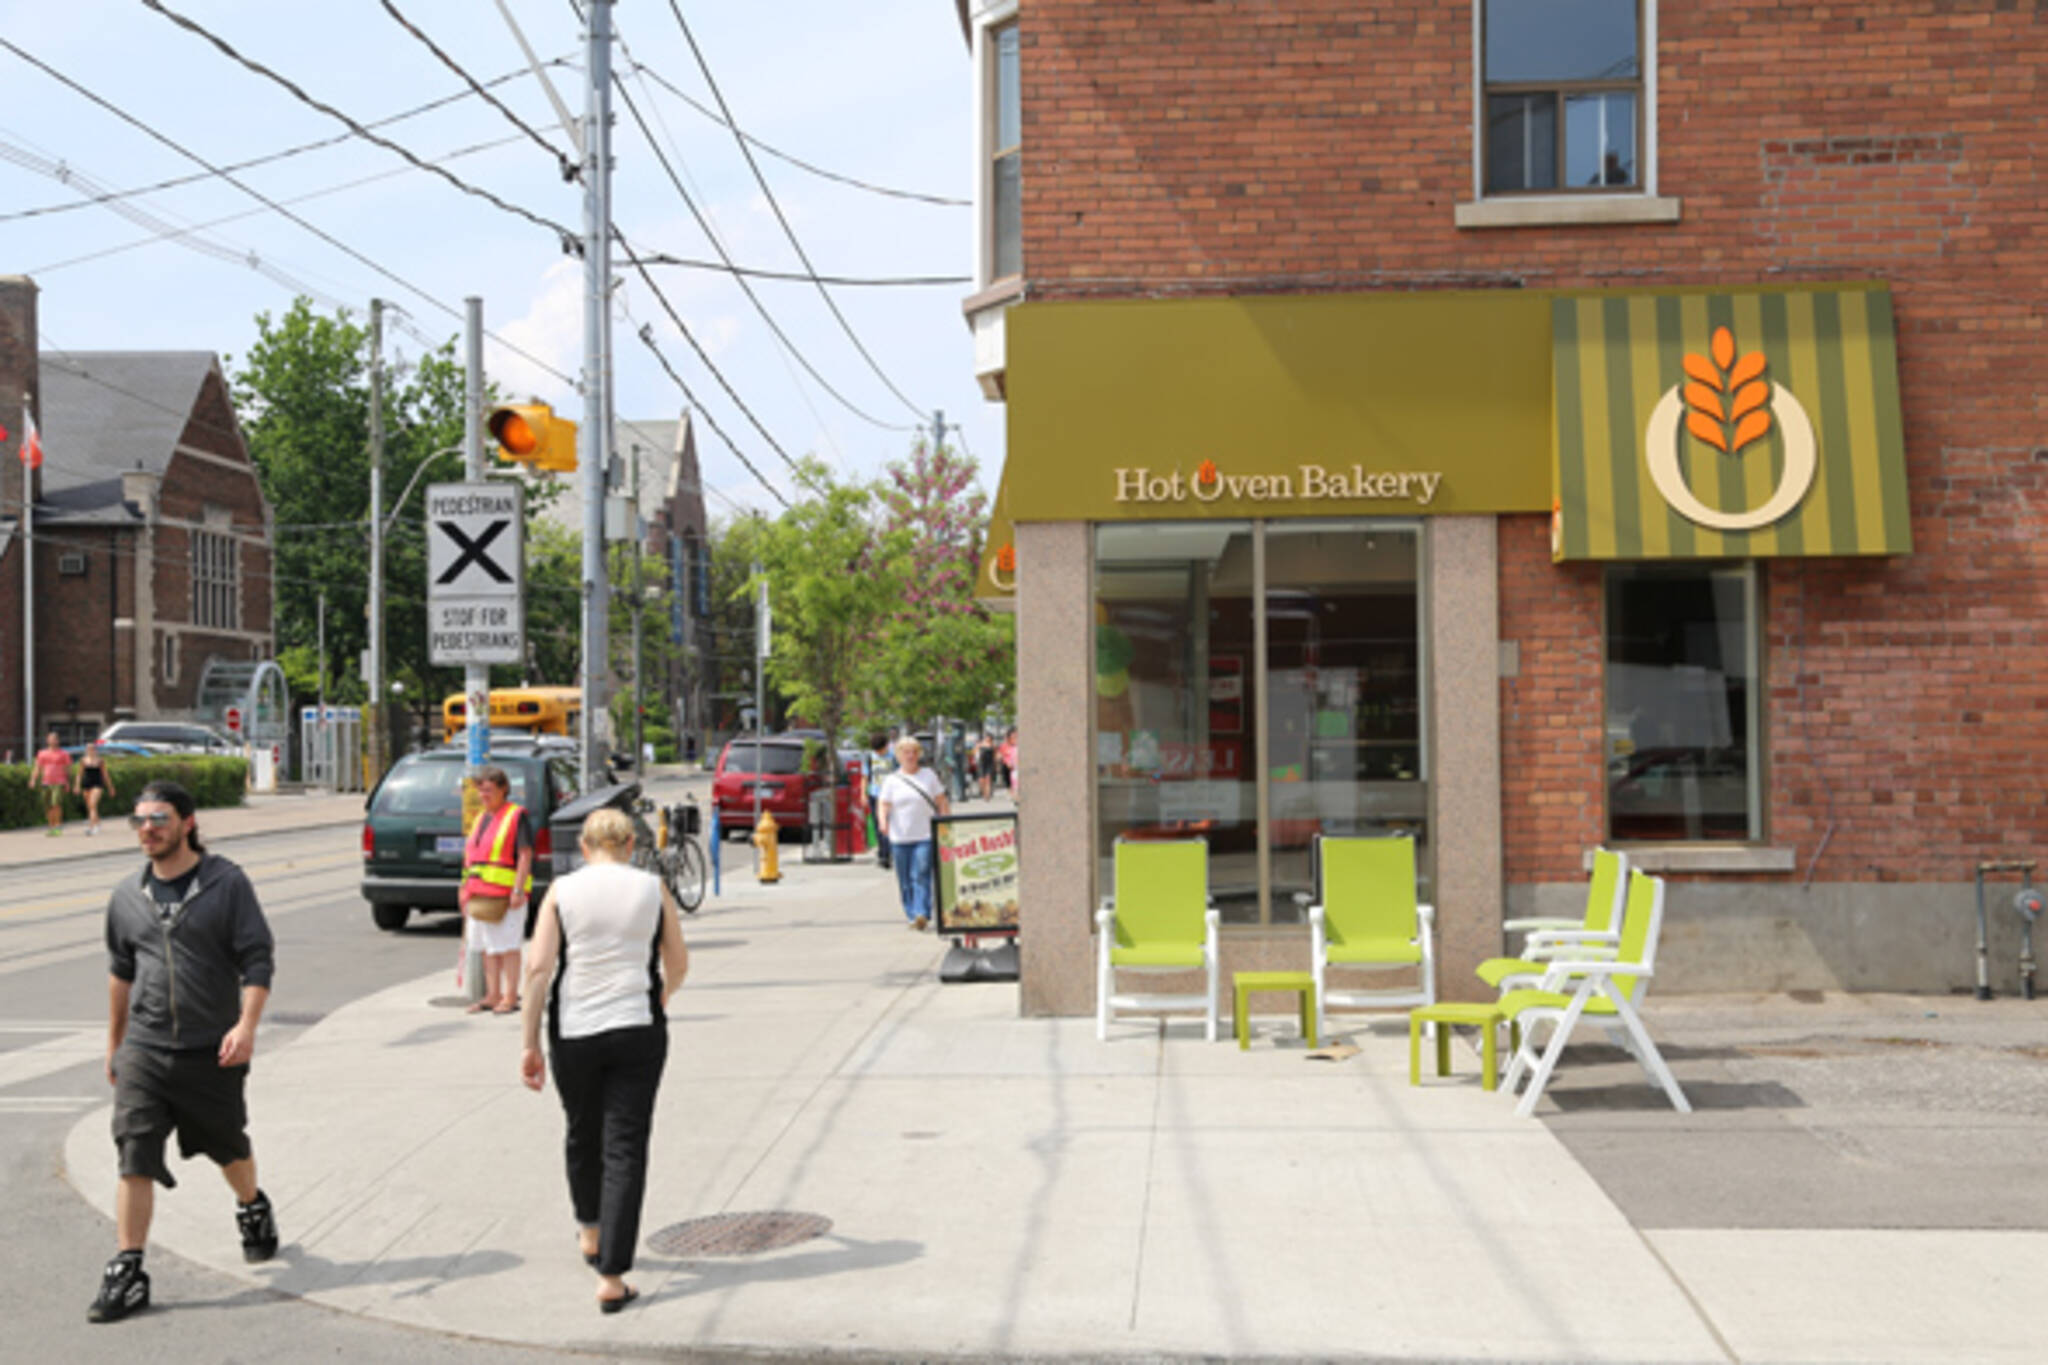 Hot Oven Bakery Roncesvalles